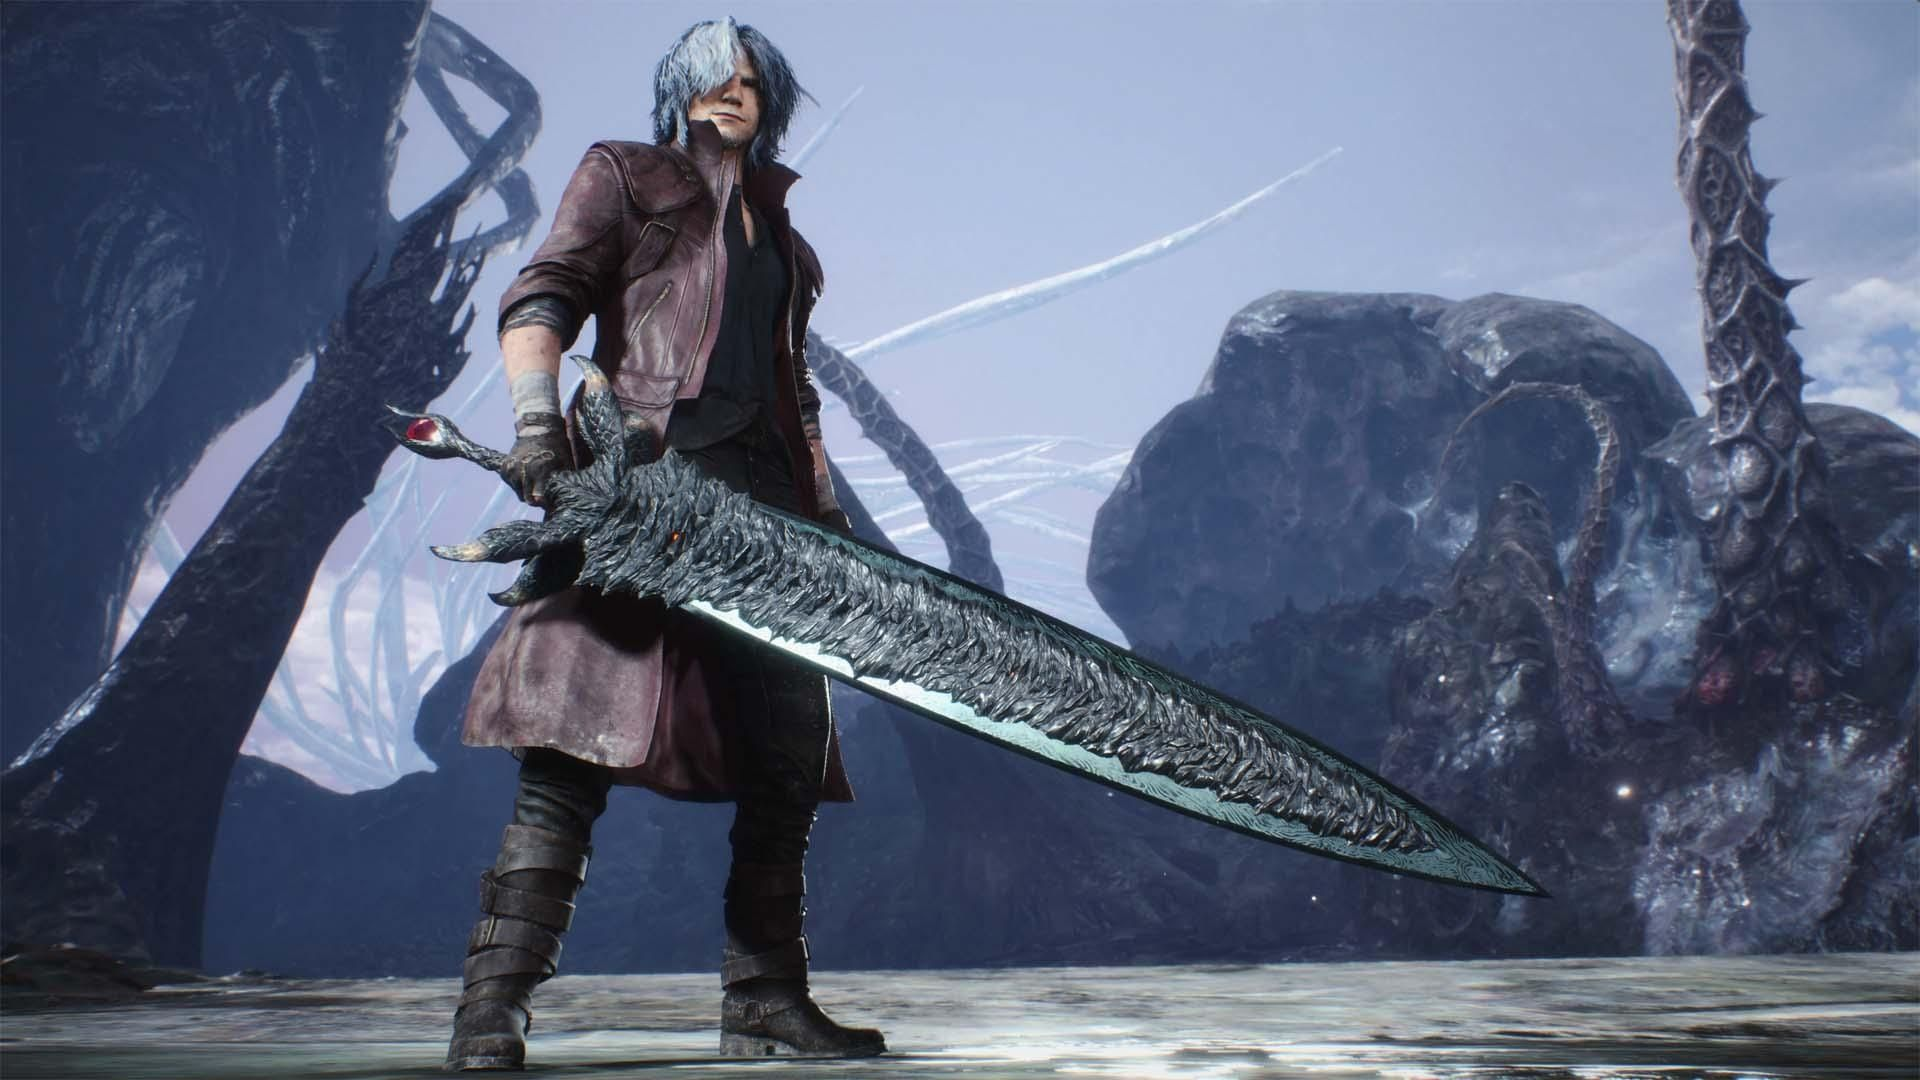 Pin On Clothe Dante devil may cry 5 wallpaper hd